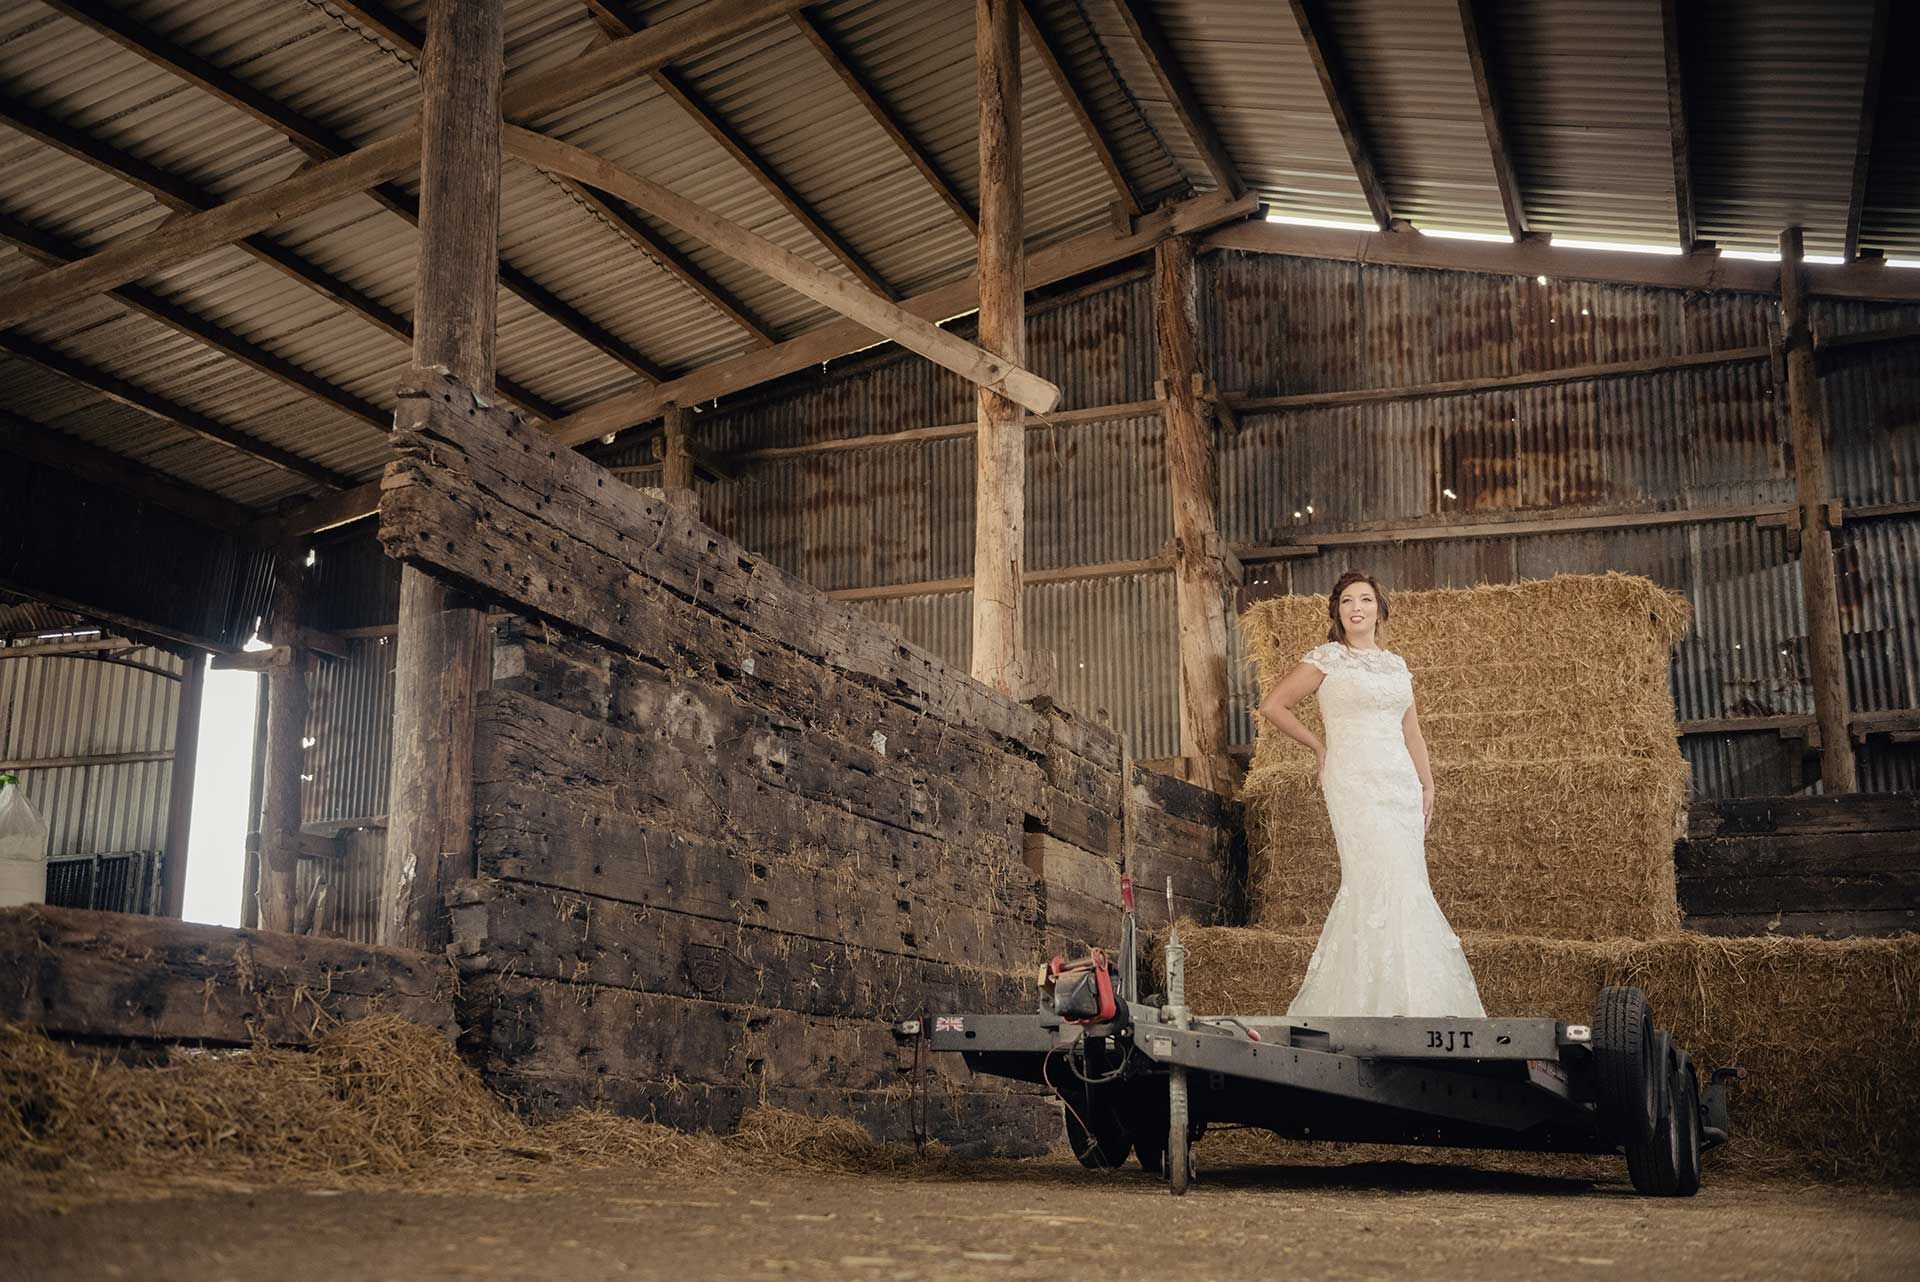 Bridal fashion shoot in a hay barn